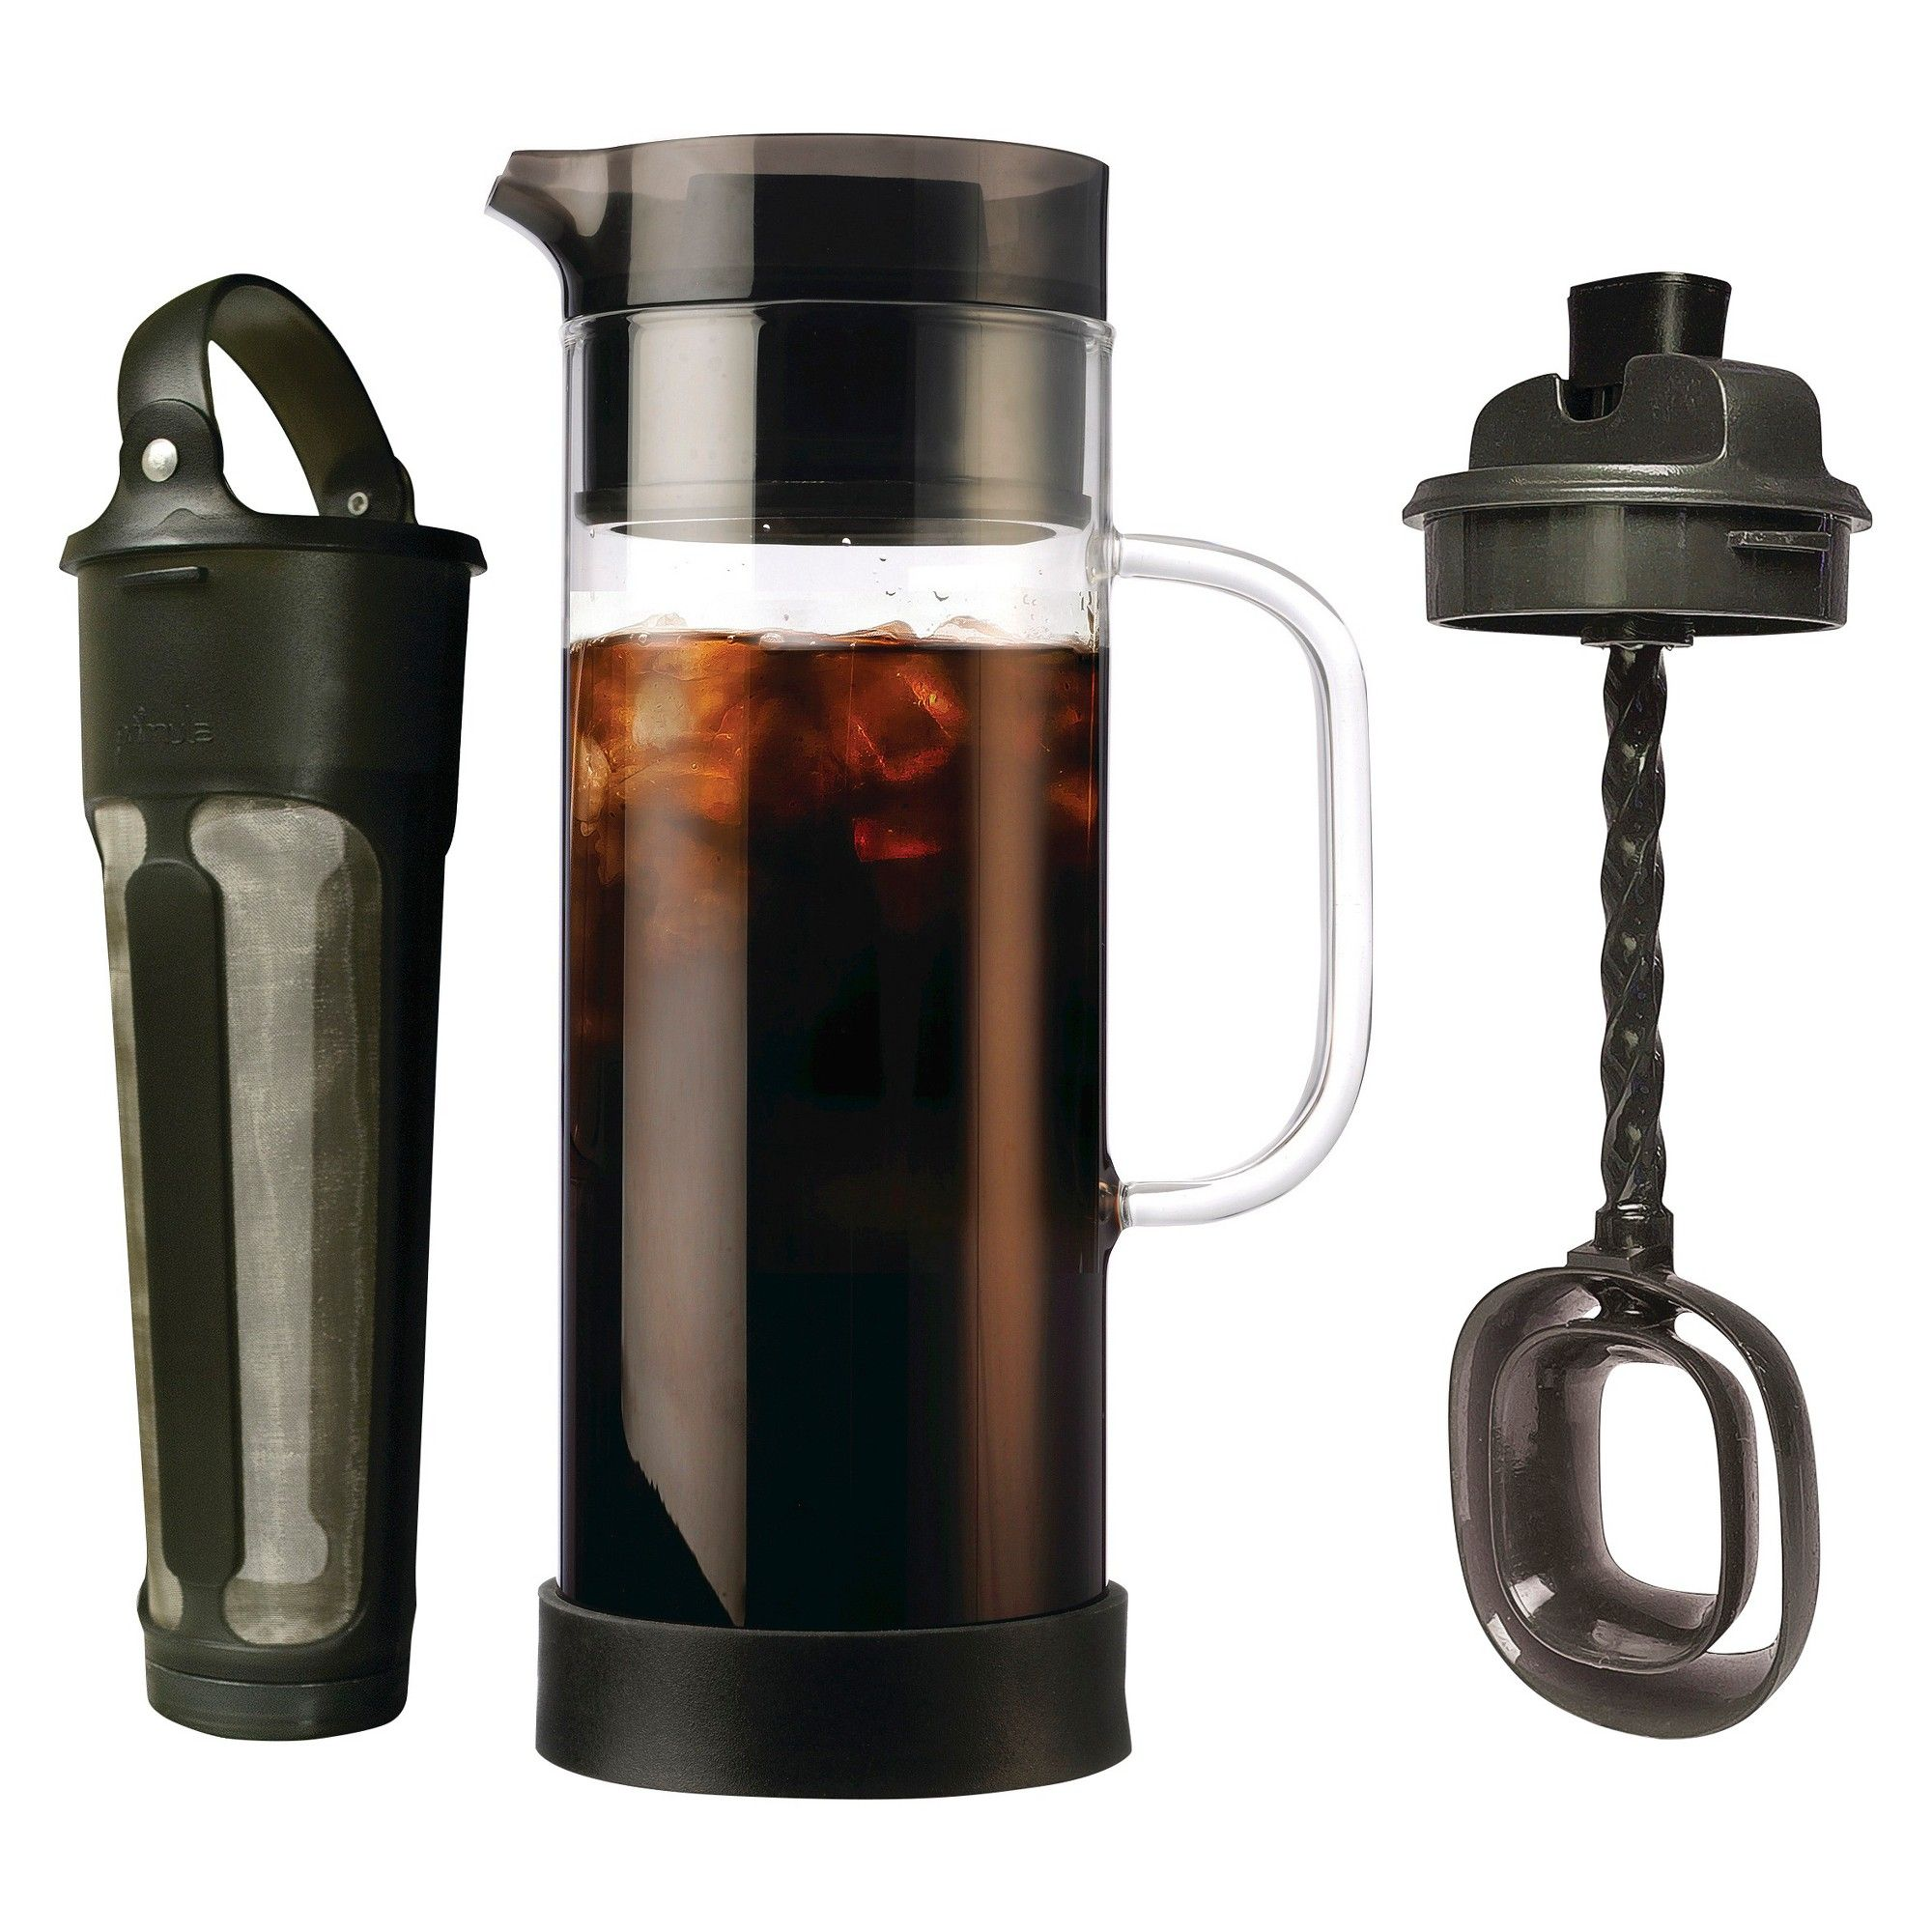 Primula Cold Brew Carafe System, Clear Making cold brew